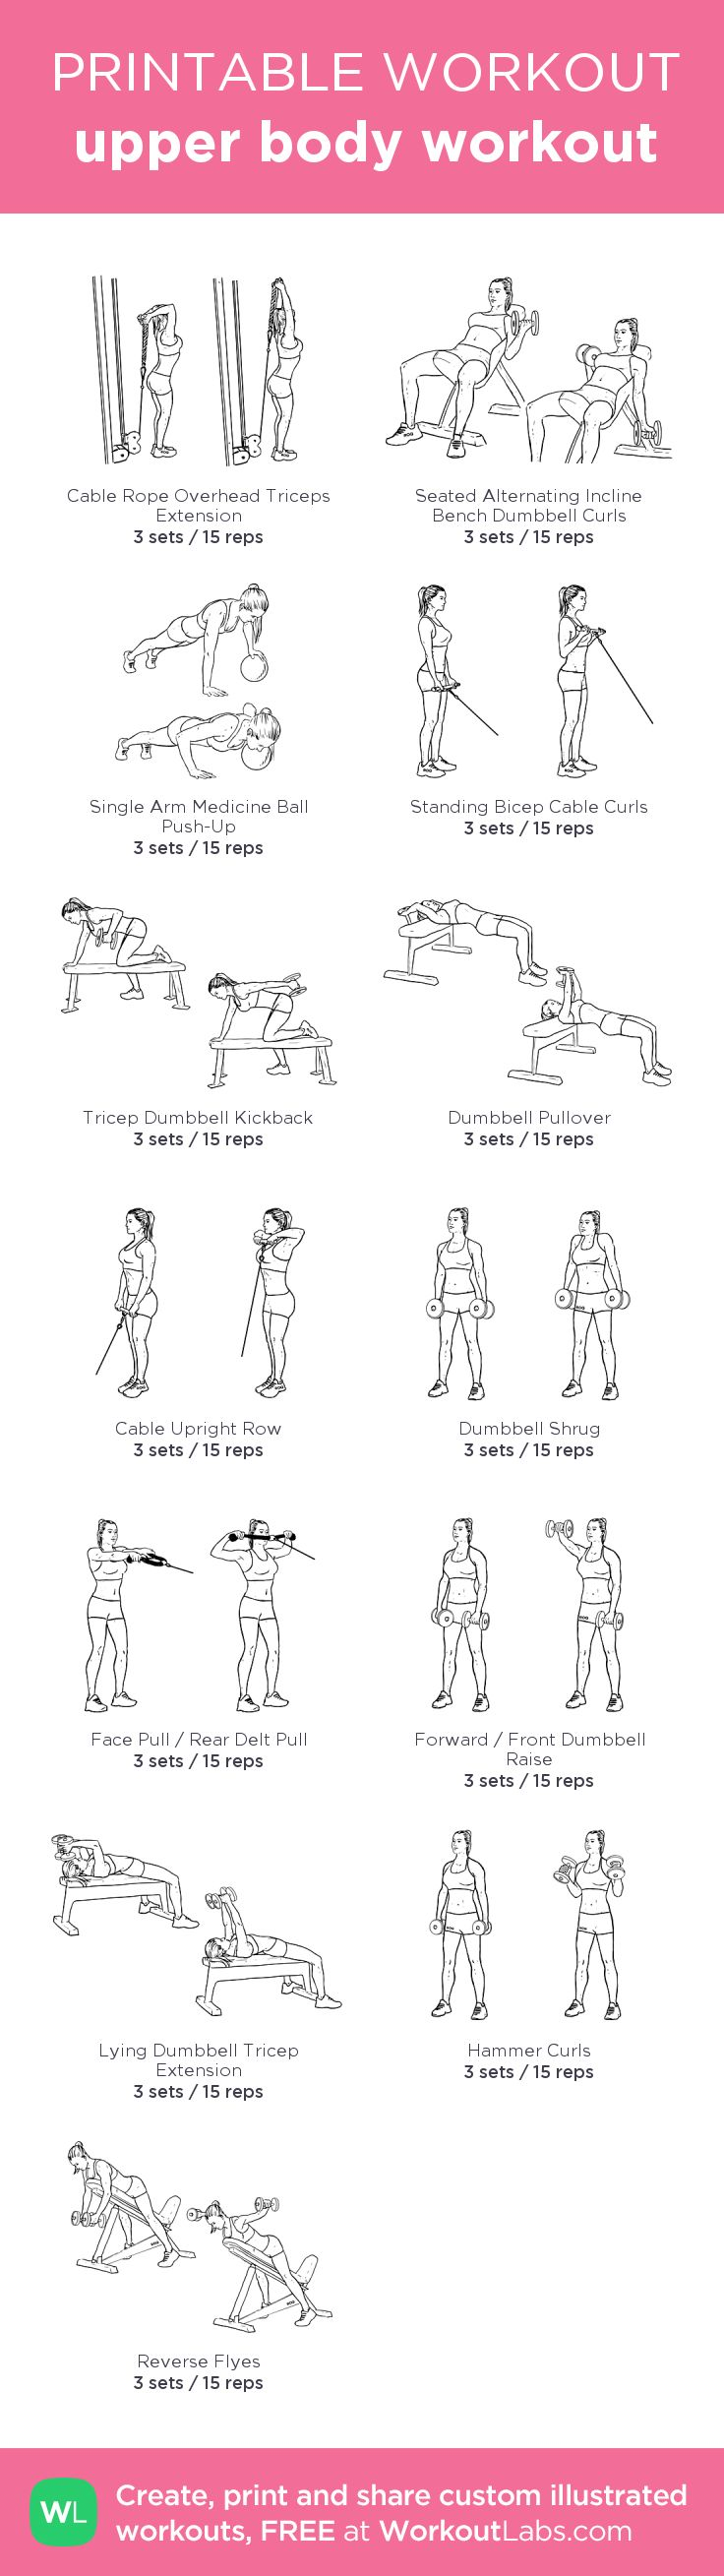 upper body workout: my visual workout created at WorkoutLabs.com • Click through to customize and download as a FREE PDF! #customworkout